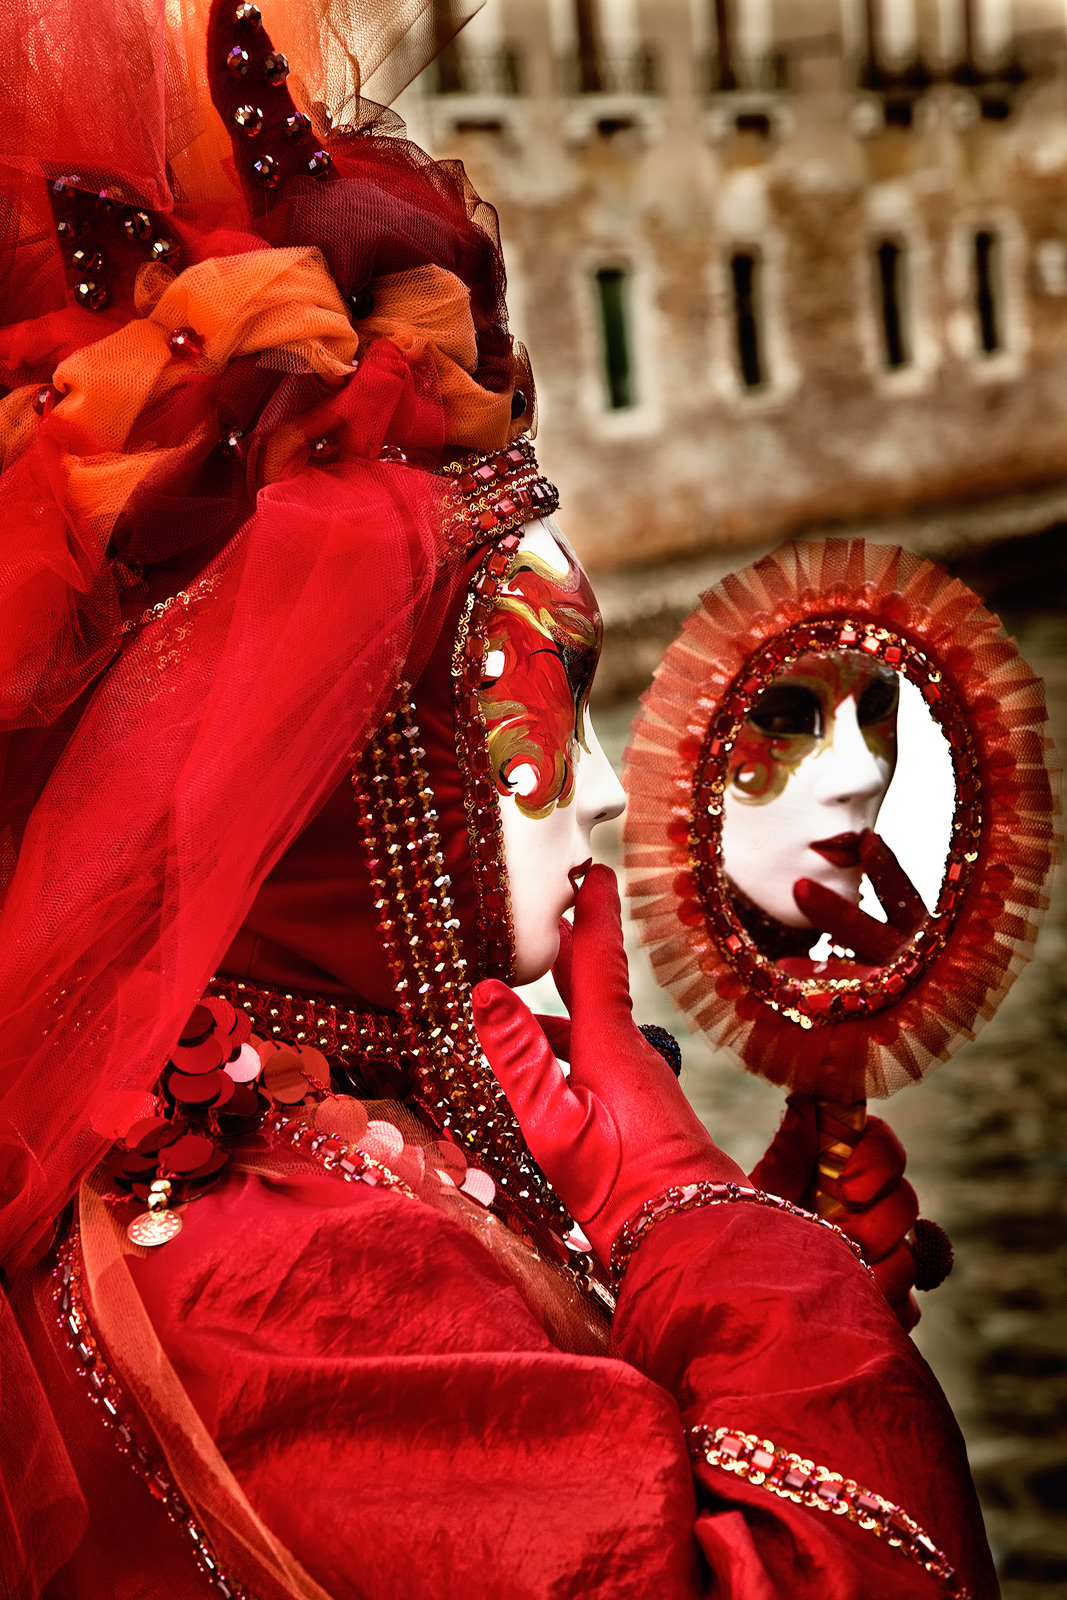 carnival, celebration, colorful, costume, europe, italy, mask, mirror, party, red, venice, vertical, photo